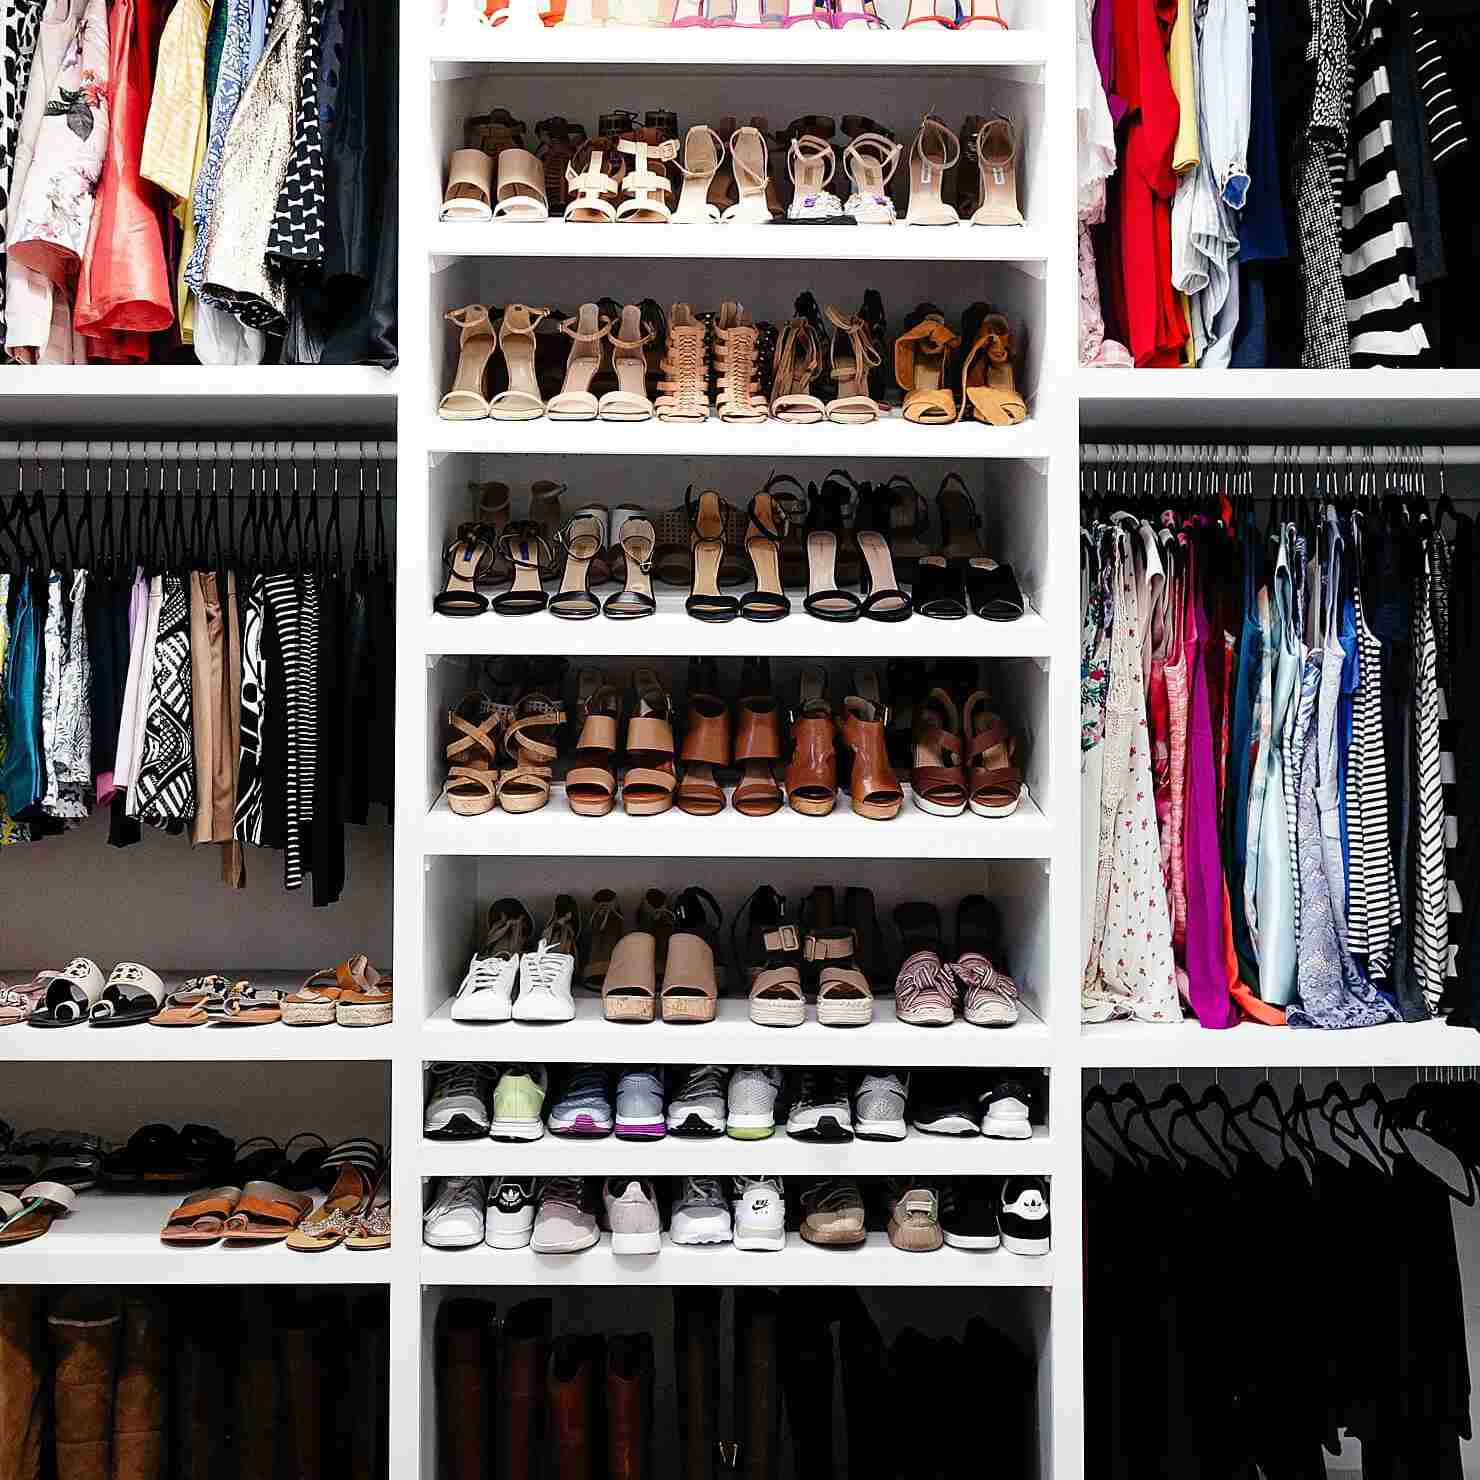 organized closet with shelves of shoes and nooks with shirts hanging on bars